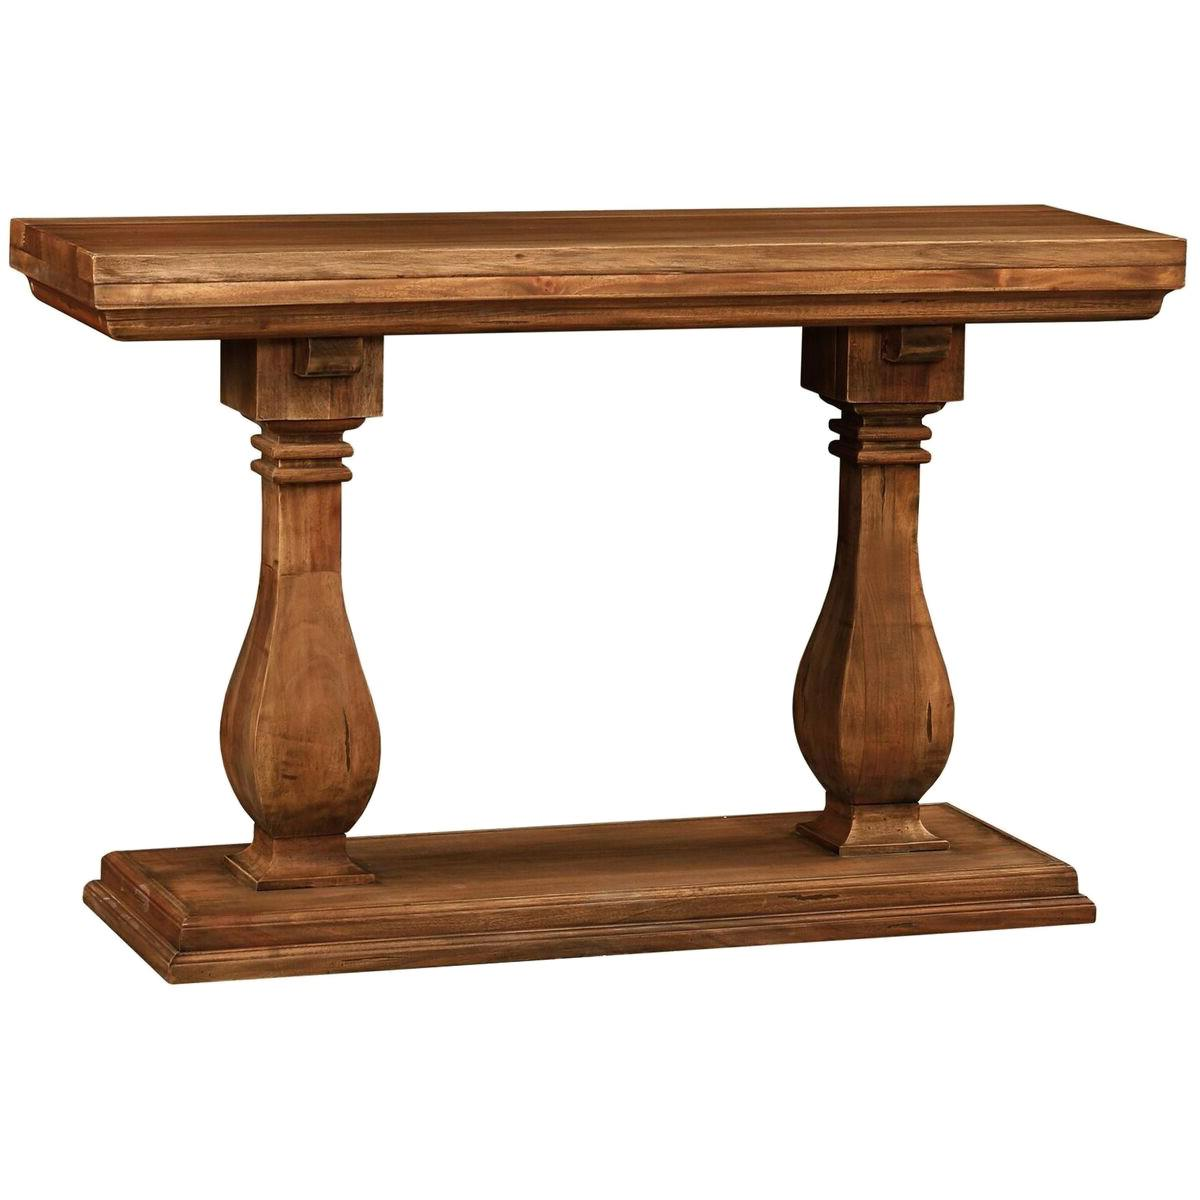 Kellaways Mahogany Timber Console Table, 122cm, Antique French Oak